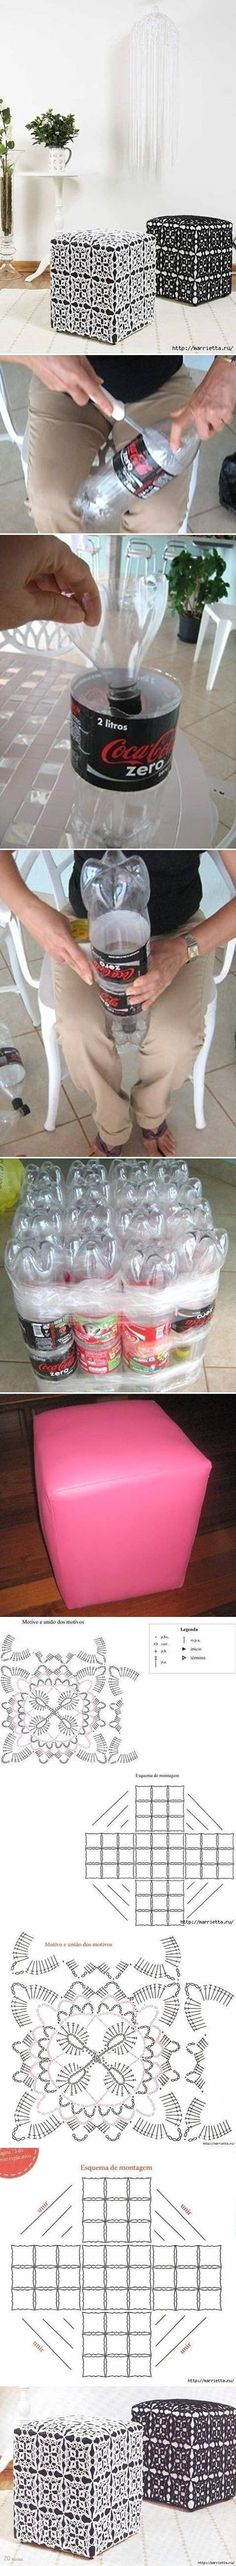 DIY Ottoman Out of Plastic Bottles DIY Projects ♪ ♪ ... #inspiration_crochet #diy GB http://www.pinterest.com/gigibrazil/boards/